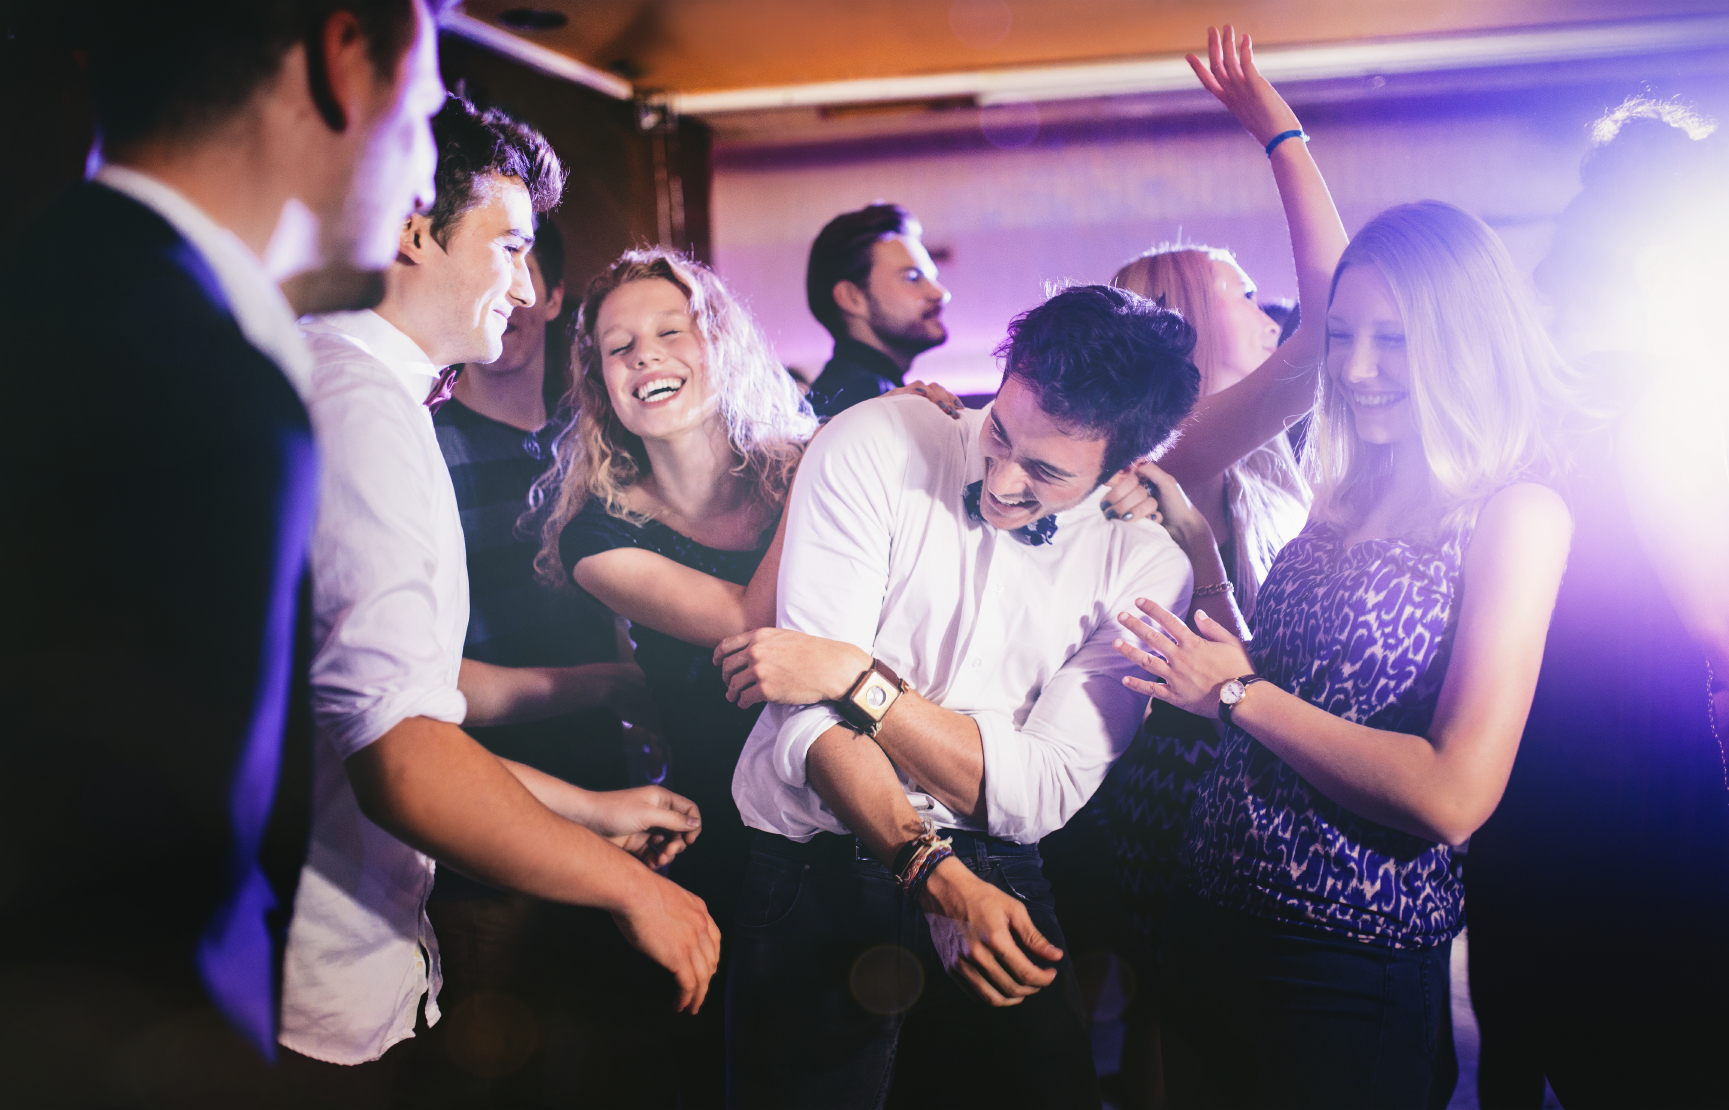 5 Theme Party Options For Organising An Amazing Stag Night